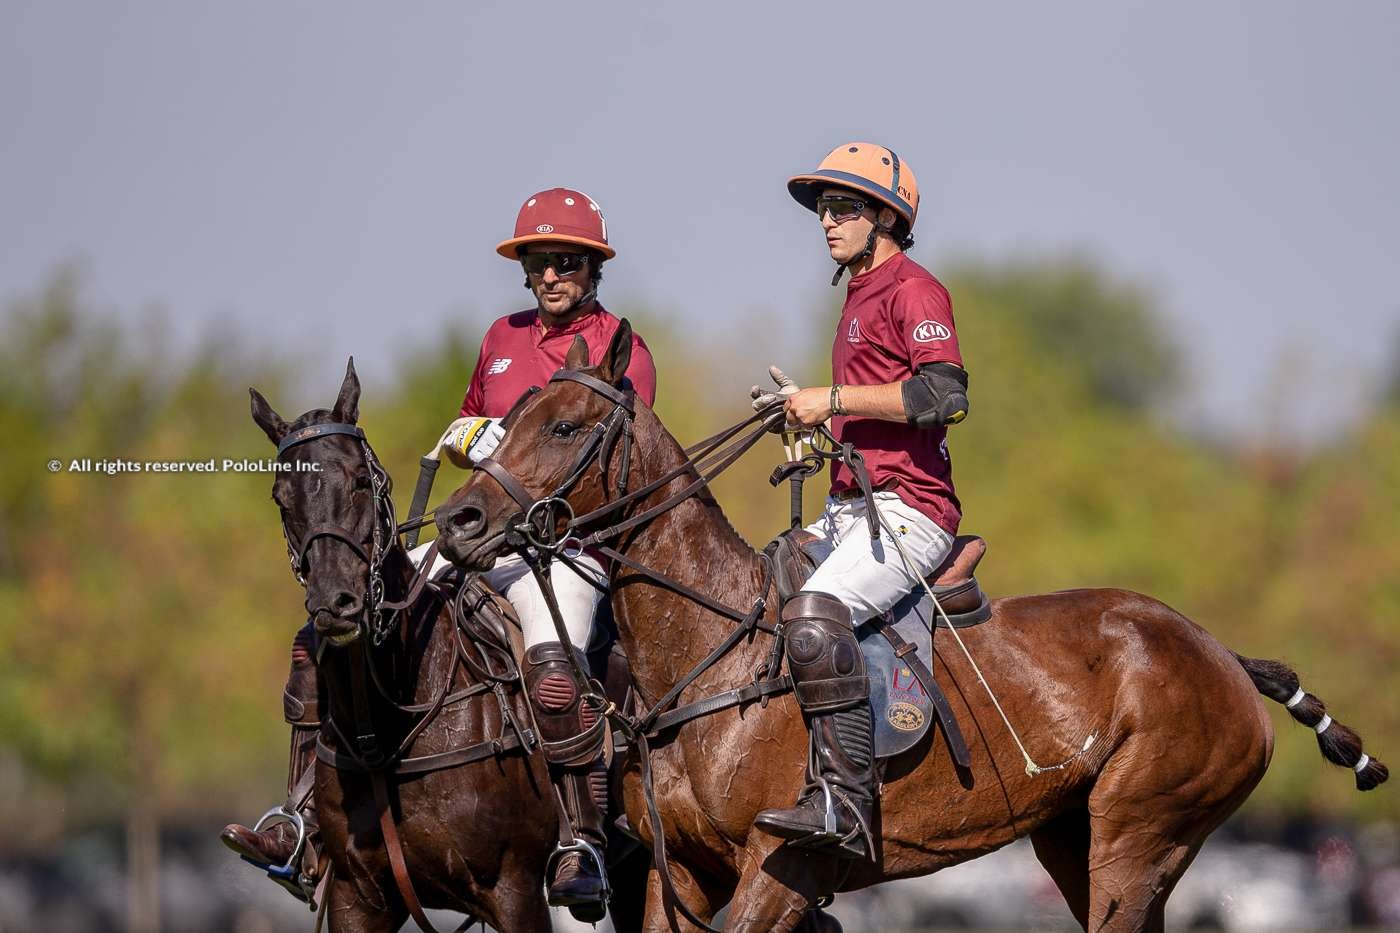 Semi #2, La Aguada vs. Trenque Lauquen-Thai Polo